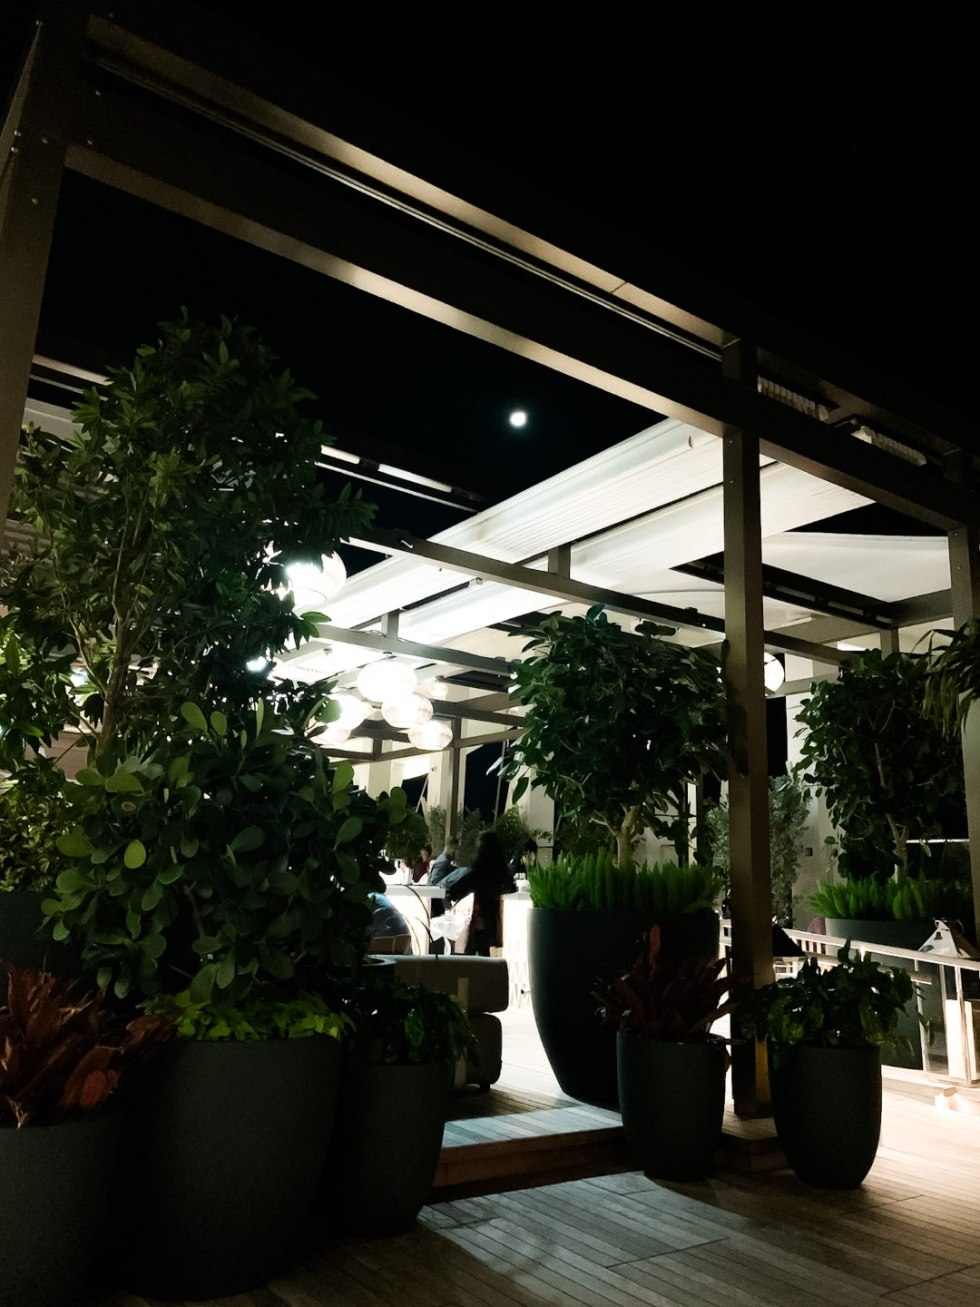 Warming Up in the Bahamas: the Best Things to Do at Baha Mar - I'm Fixin' To - @mbg0112 | Warming Up in the Bahamas: the Best Things to Do in Baha Mar by popular North Carolina travel blog, I'm Fixin' To: image of a lit outdoor patio at night.